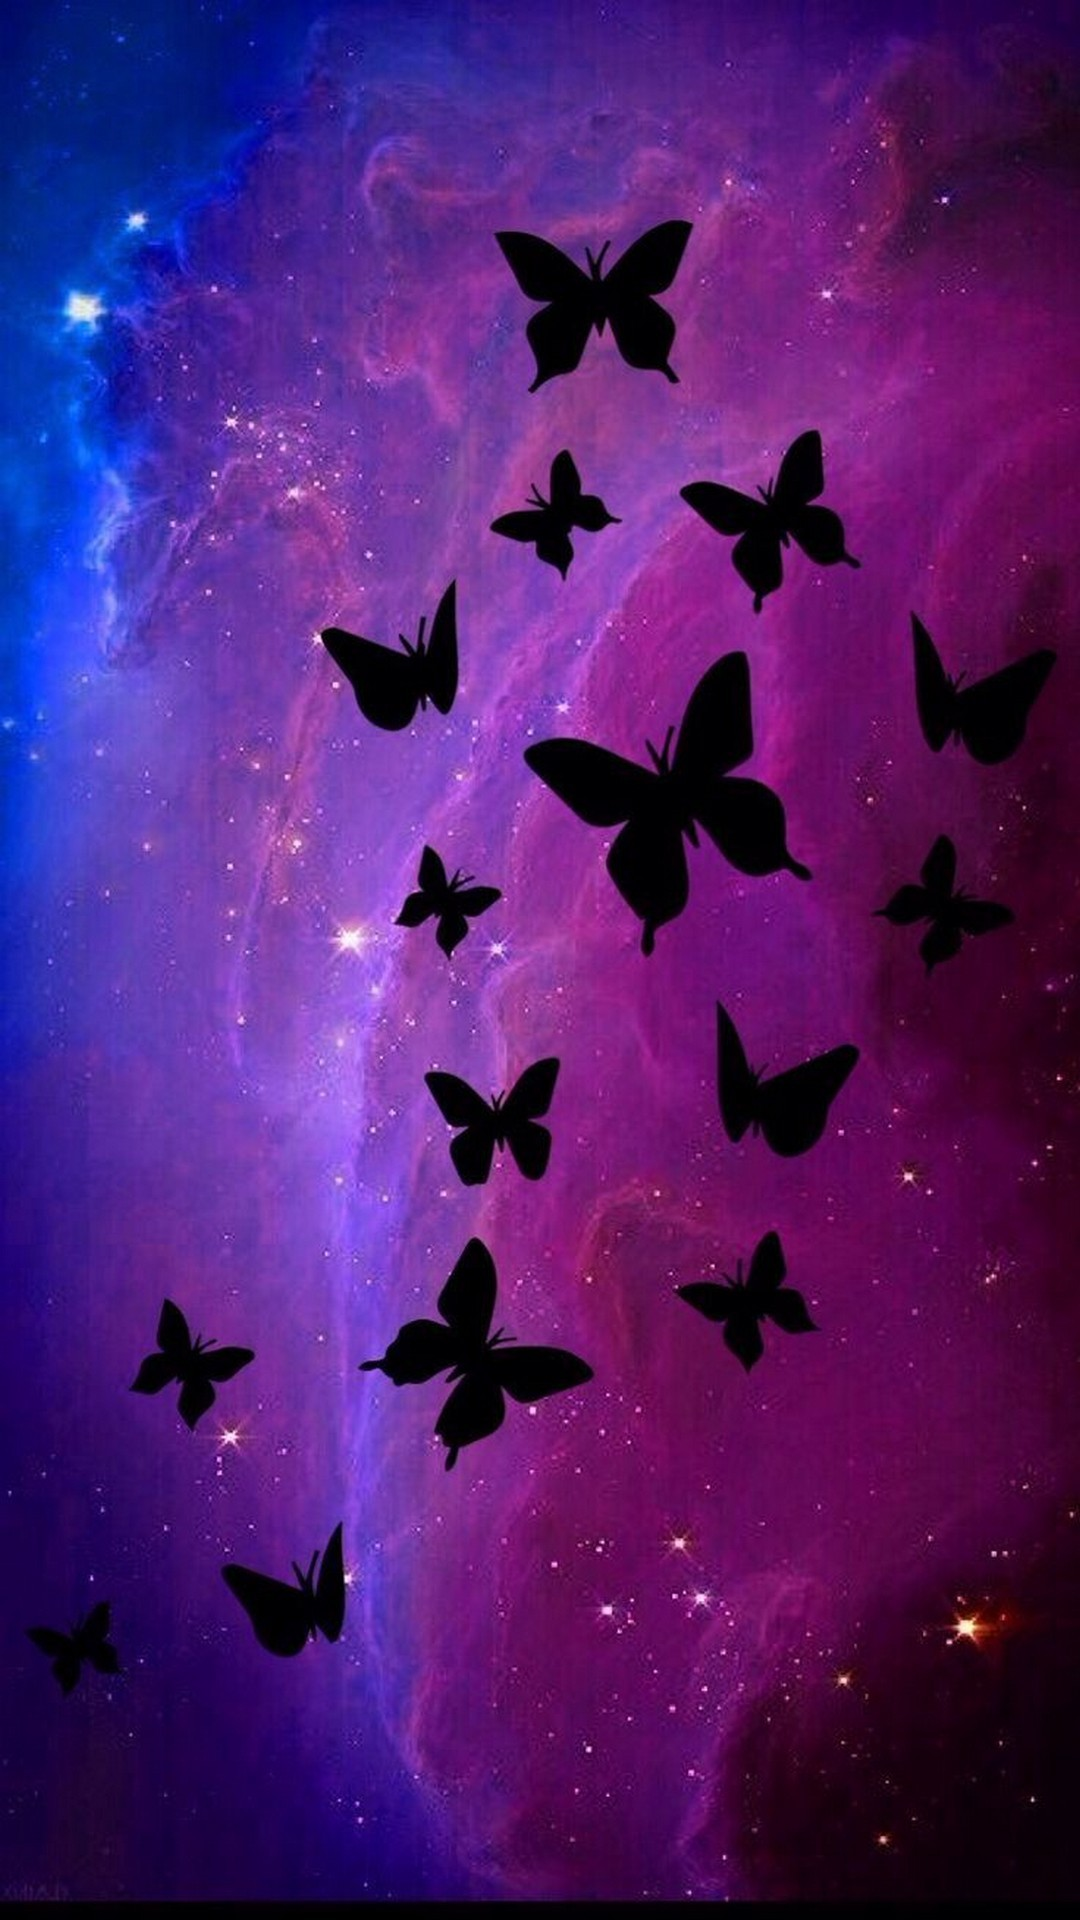 Black Butterfly Wallpaper 68+ images